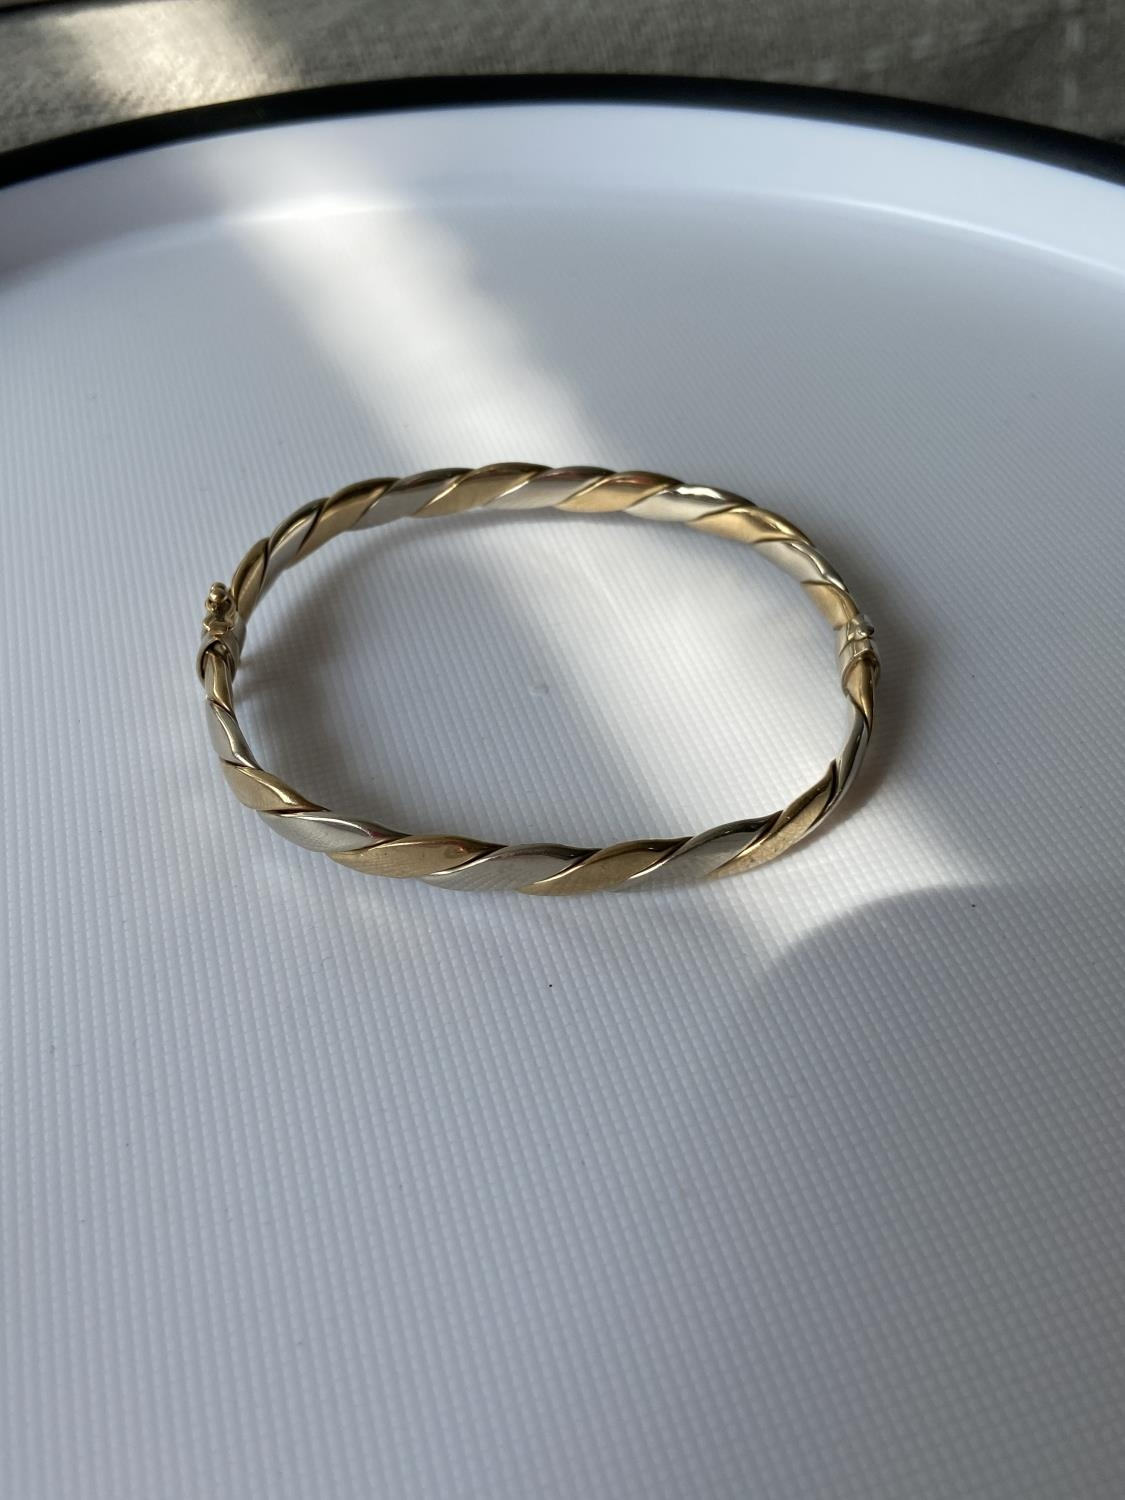 A London export 9ct gold two tone bangle (missing clasp) [5x5cm] [10-25g]